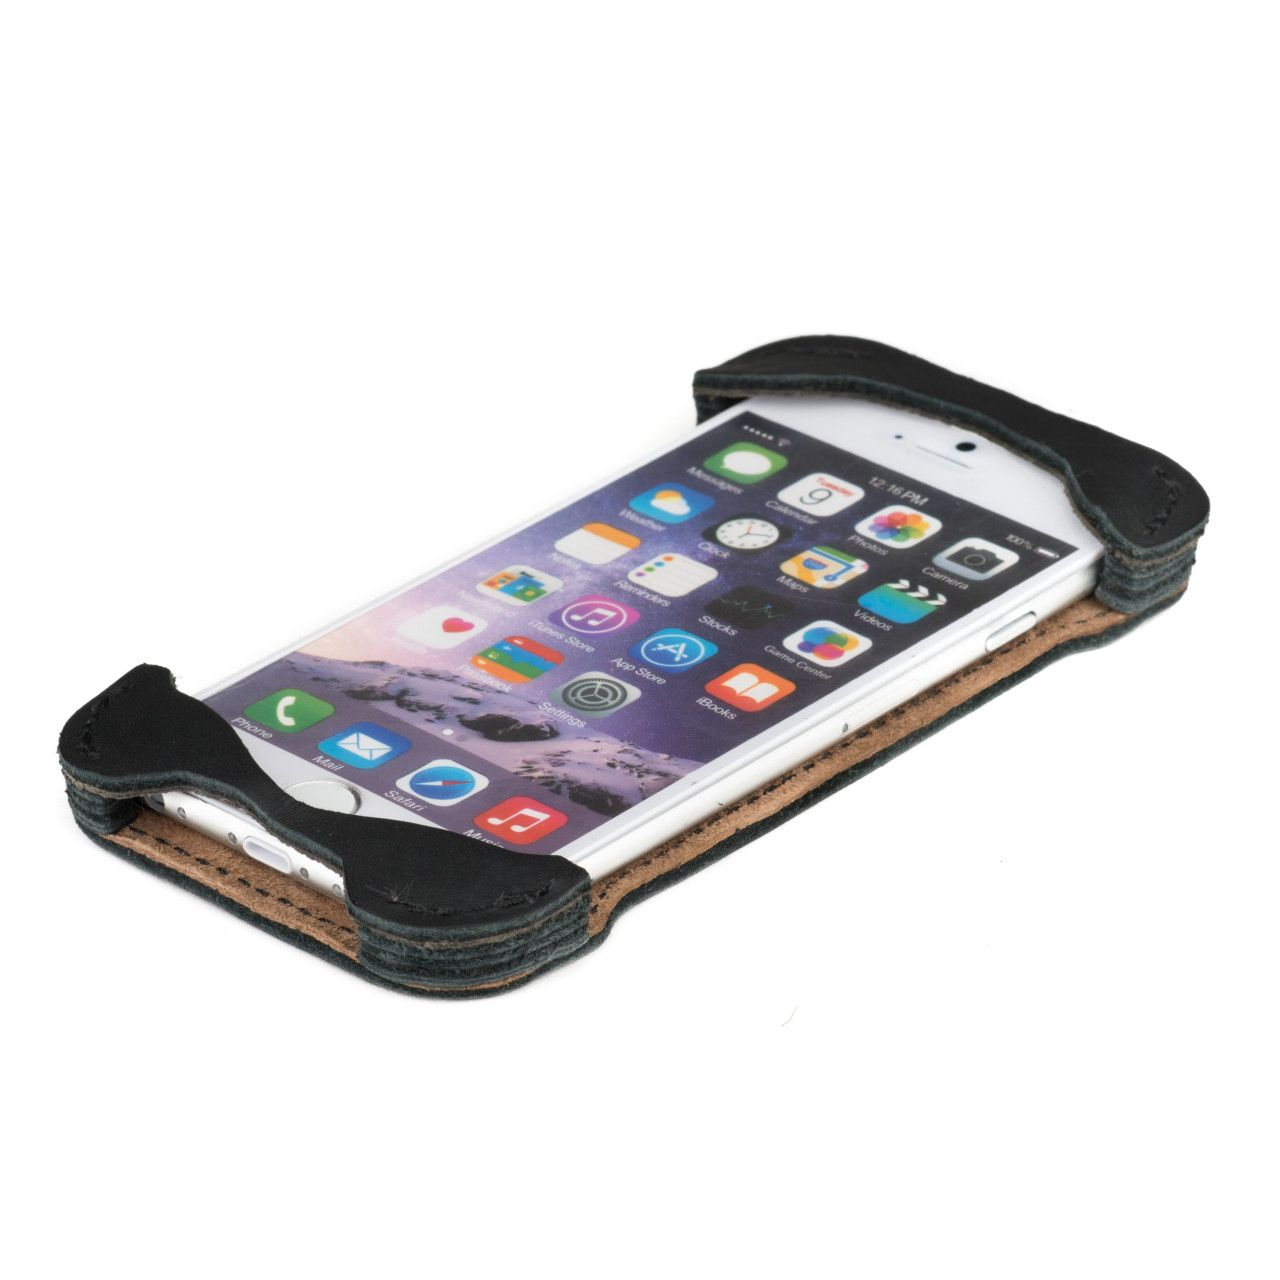 Iphone in iphone 6 leather case small in black leather